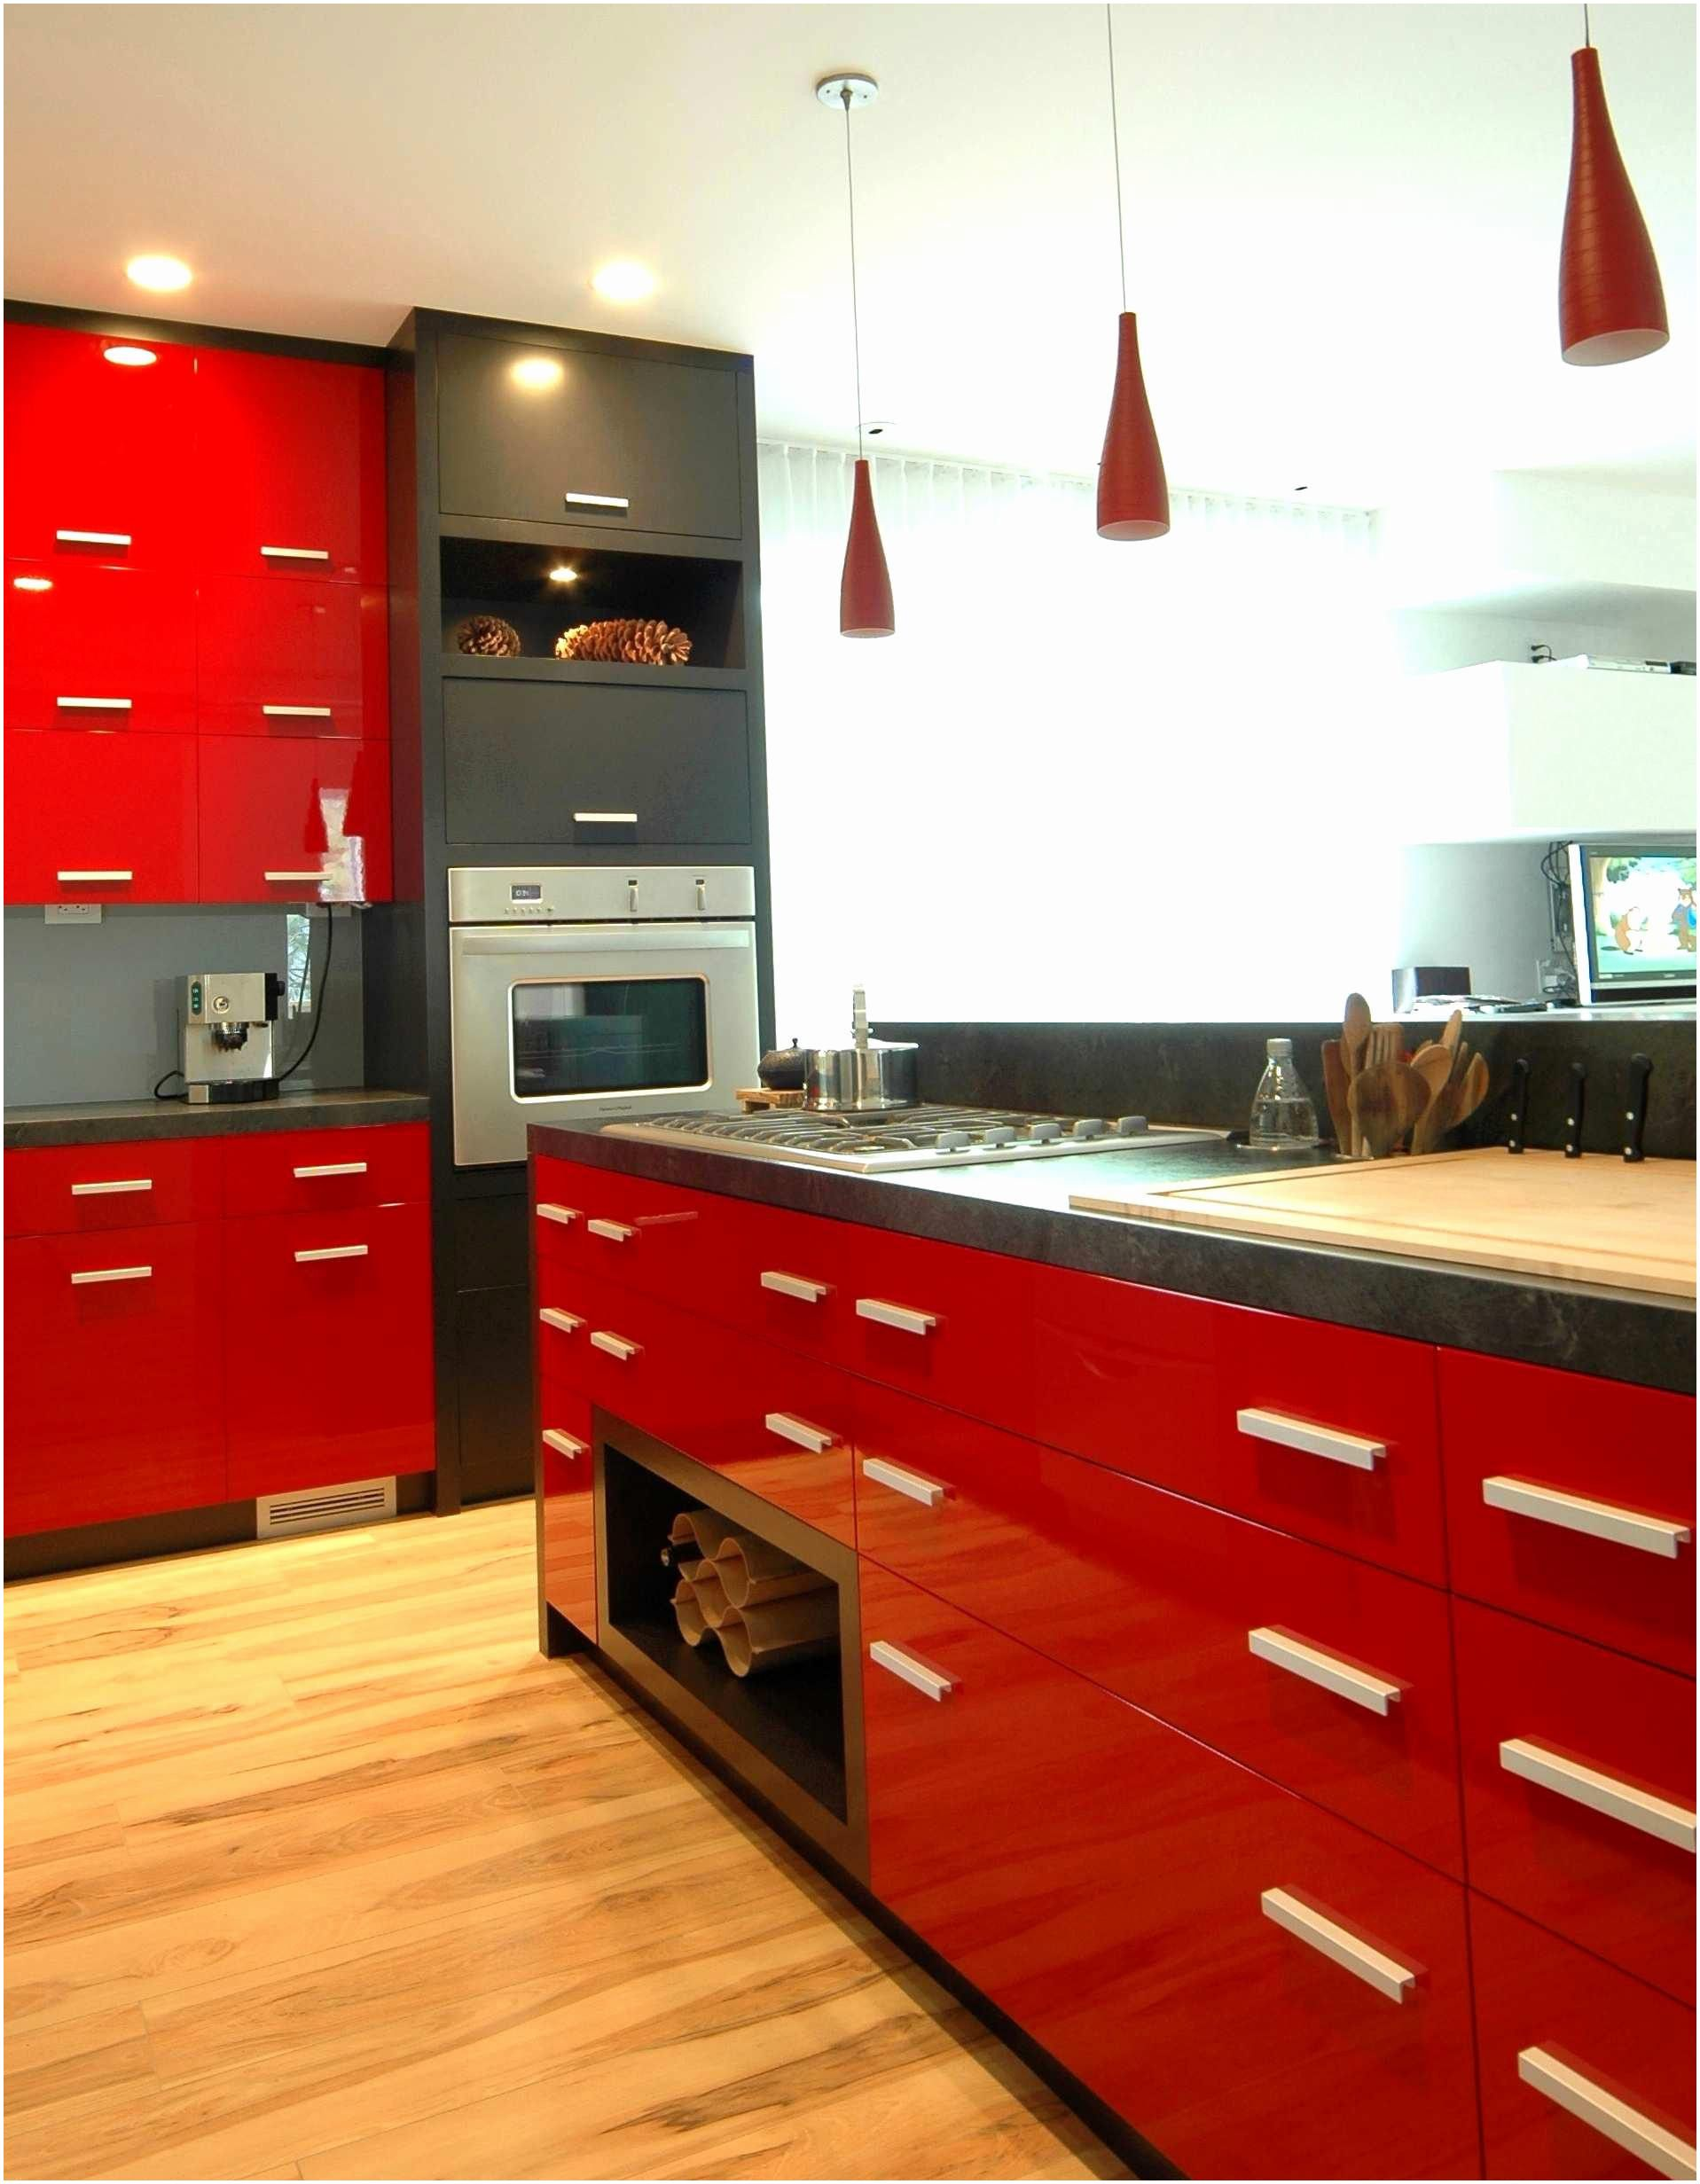 Used Kitchen Cabinets For Sale Check More At Http Www Kitchenideas Club Use Red And White Kitchen Cabinets High Gloss Kitchen Cabinets Kitchen Cabinet Design